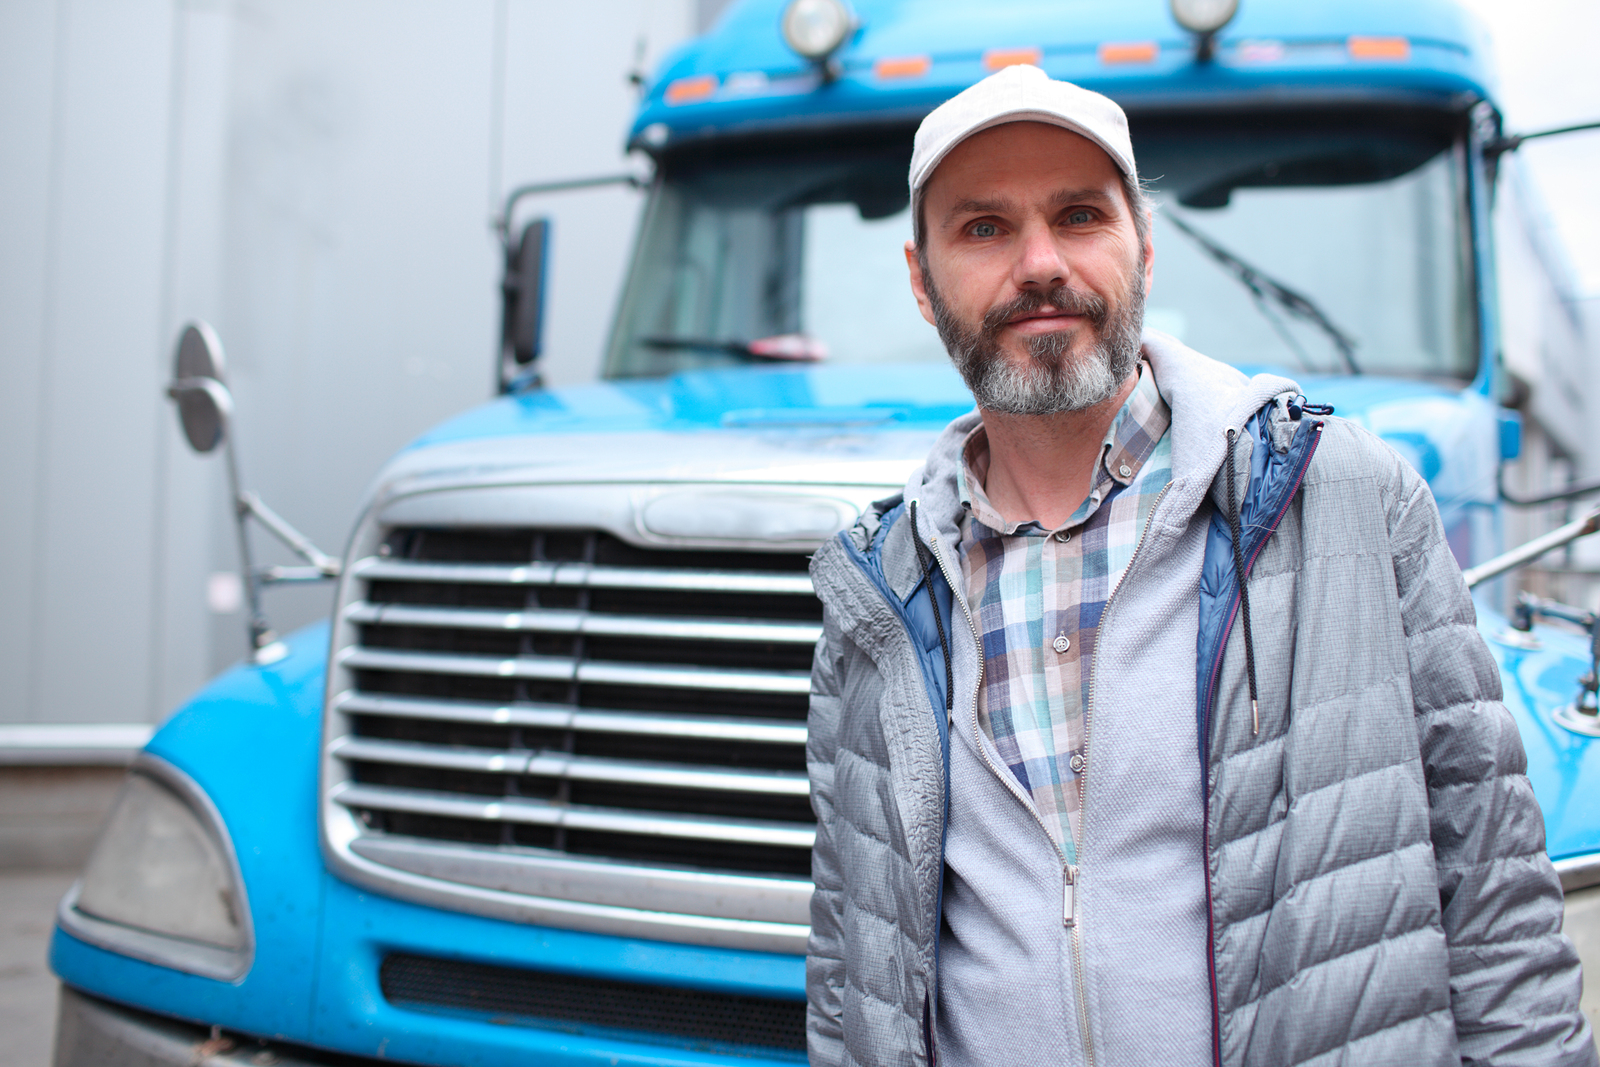 A man that got his job through truck driver recruiting.